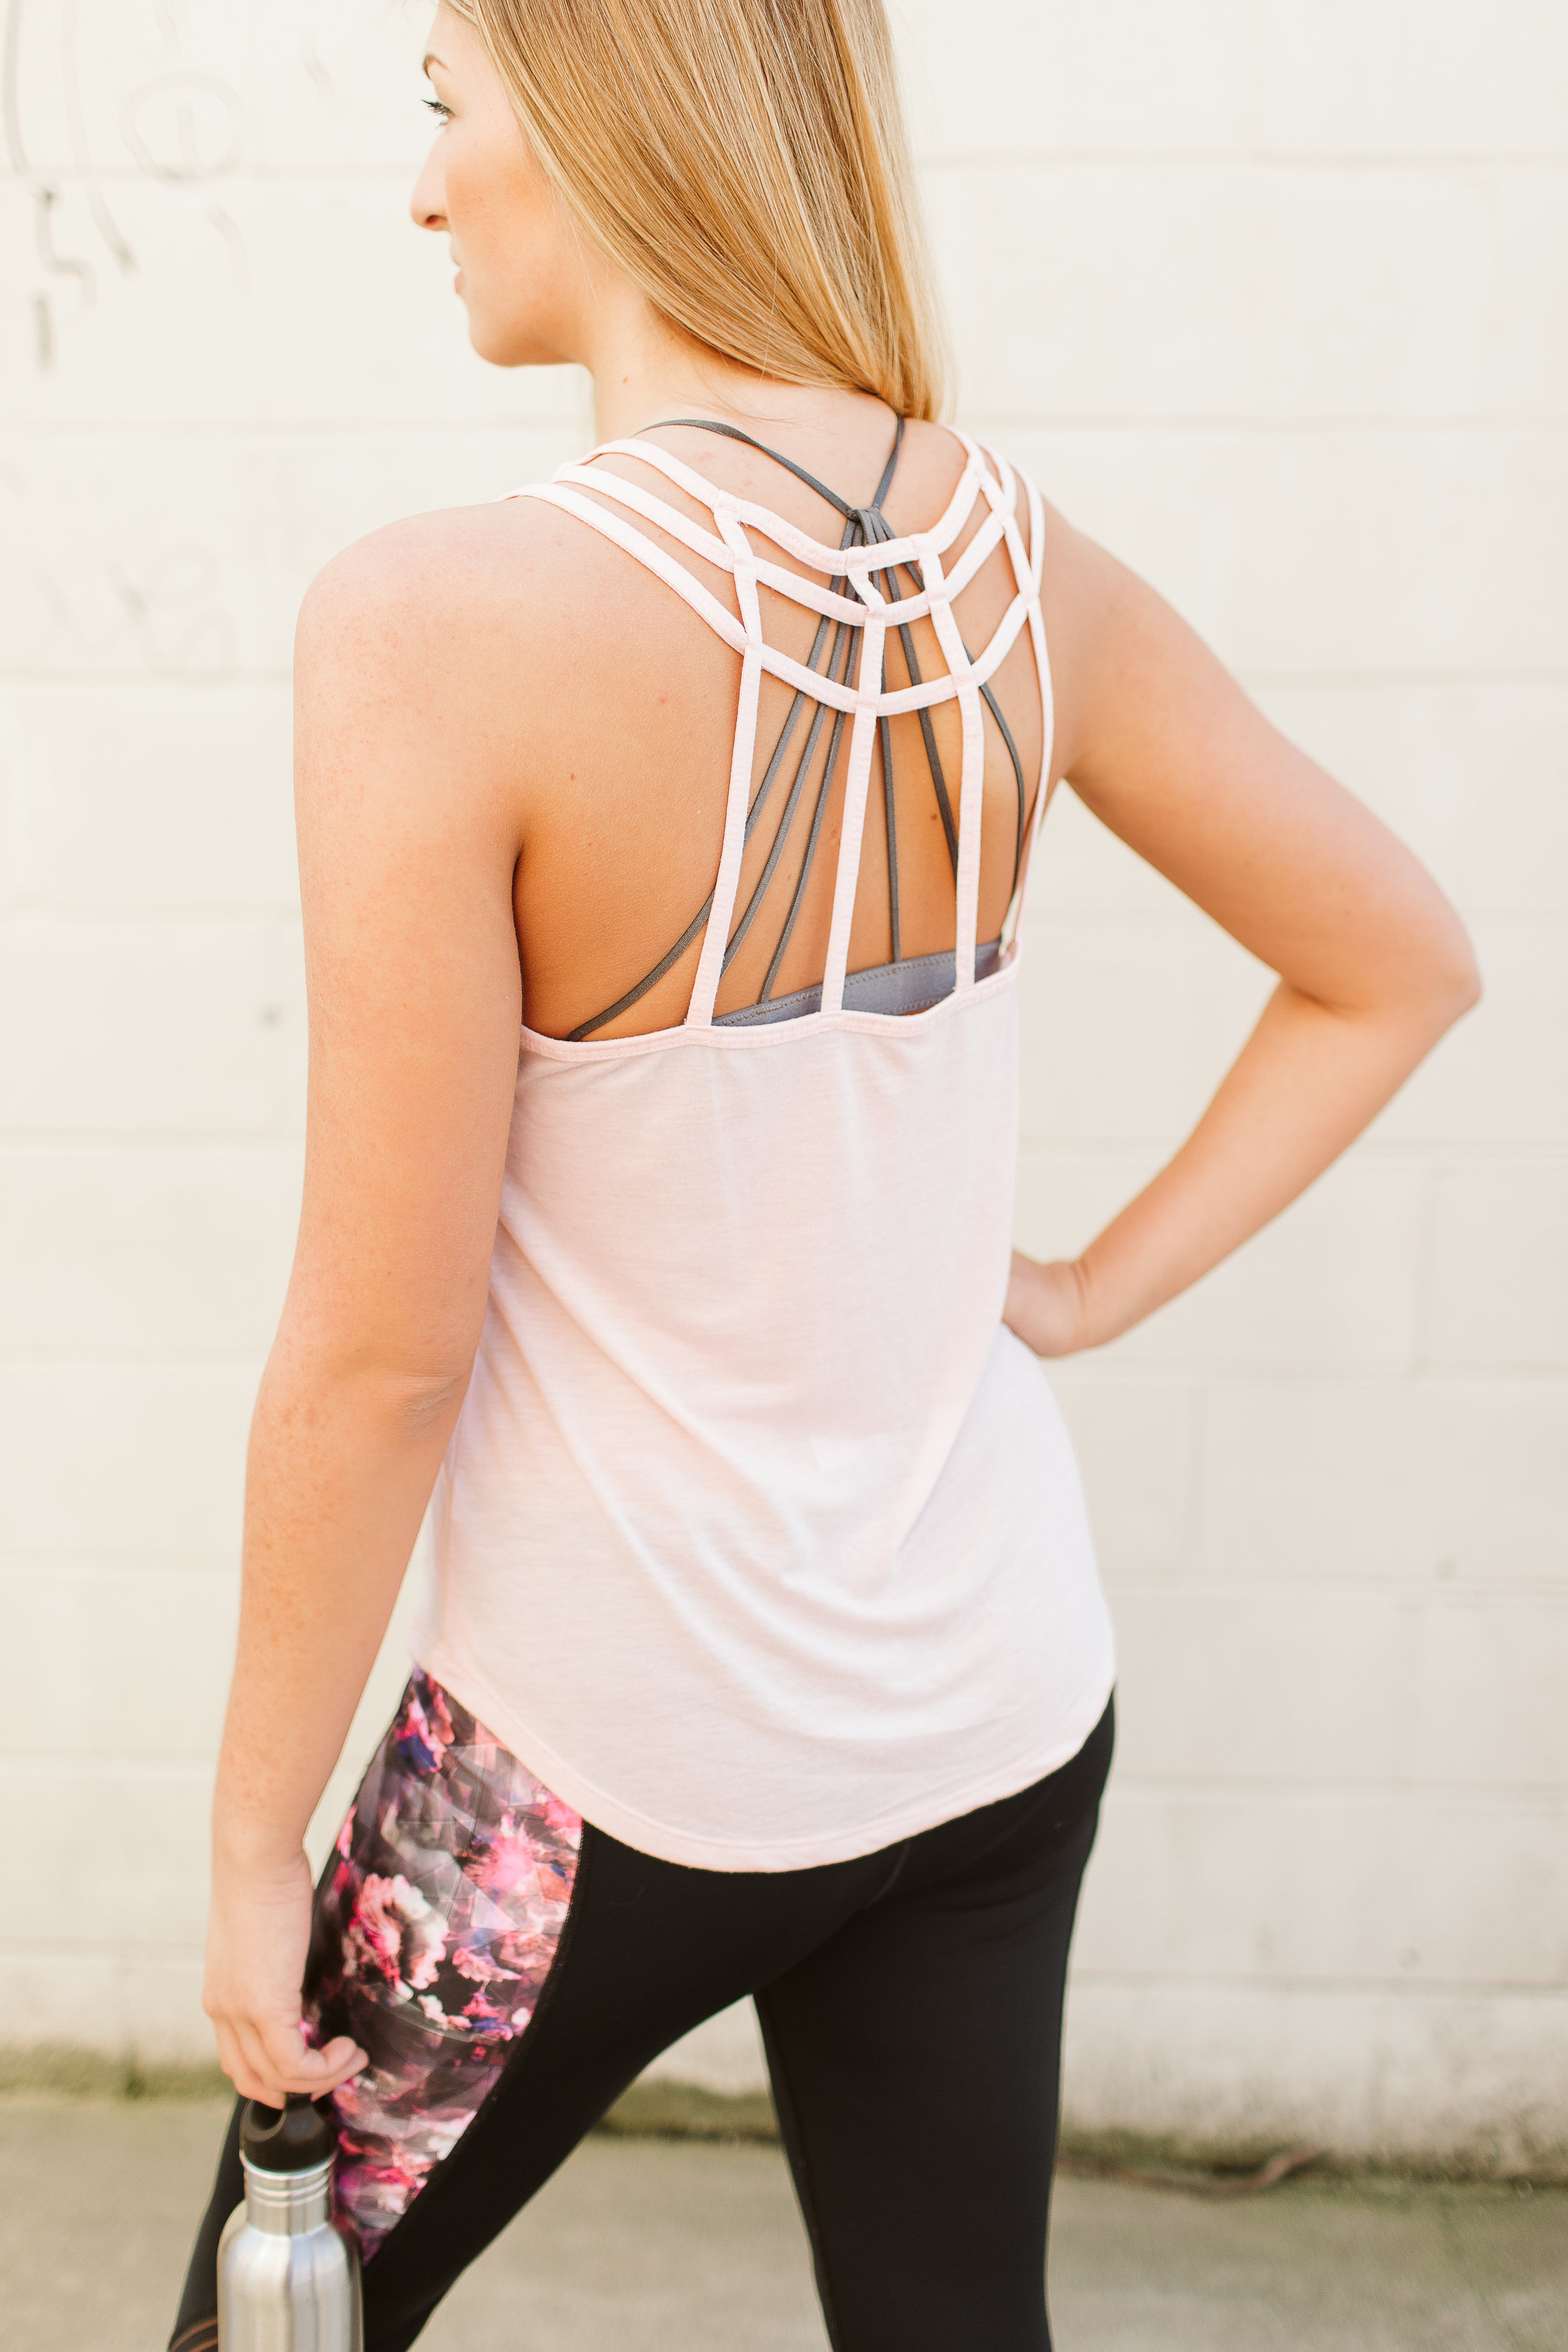 Ellie Activewear Review March Box February Box Fit and Flatter Fit + Flatter.jpg